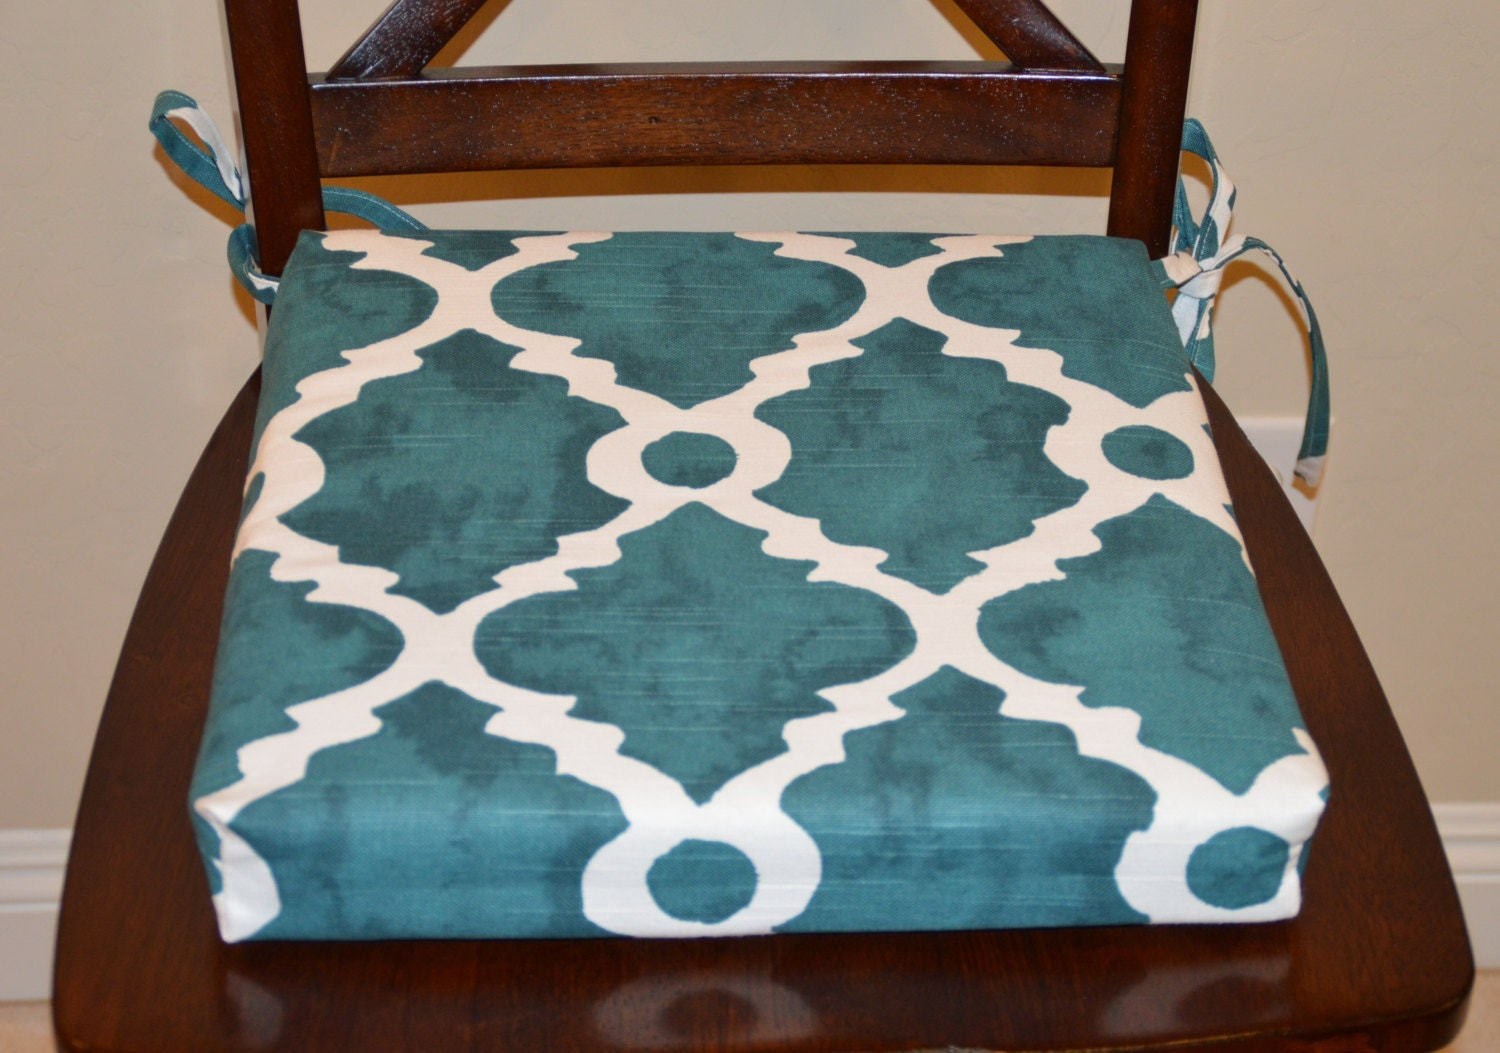 Kitchen Chair Seat Cushion Covers: Teal And White Chair Cushion Cover. Washable Removable